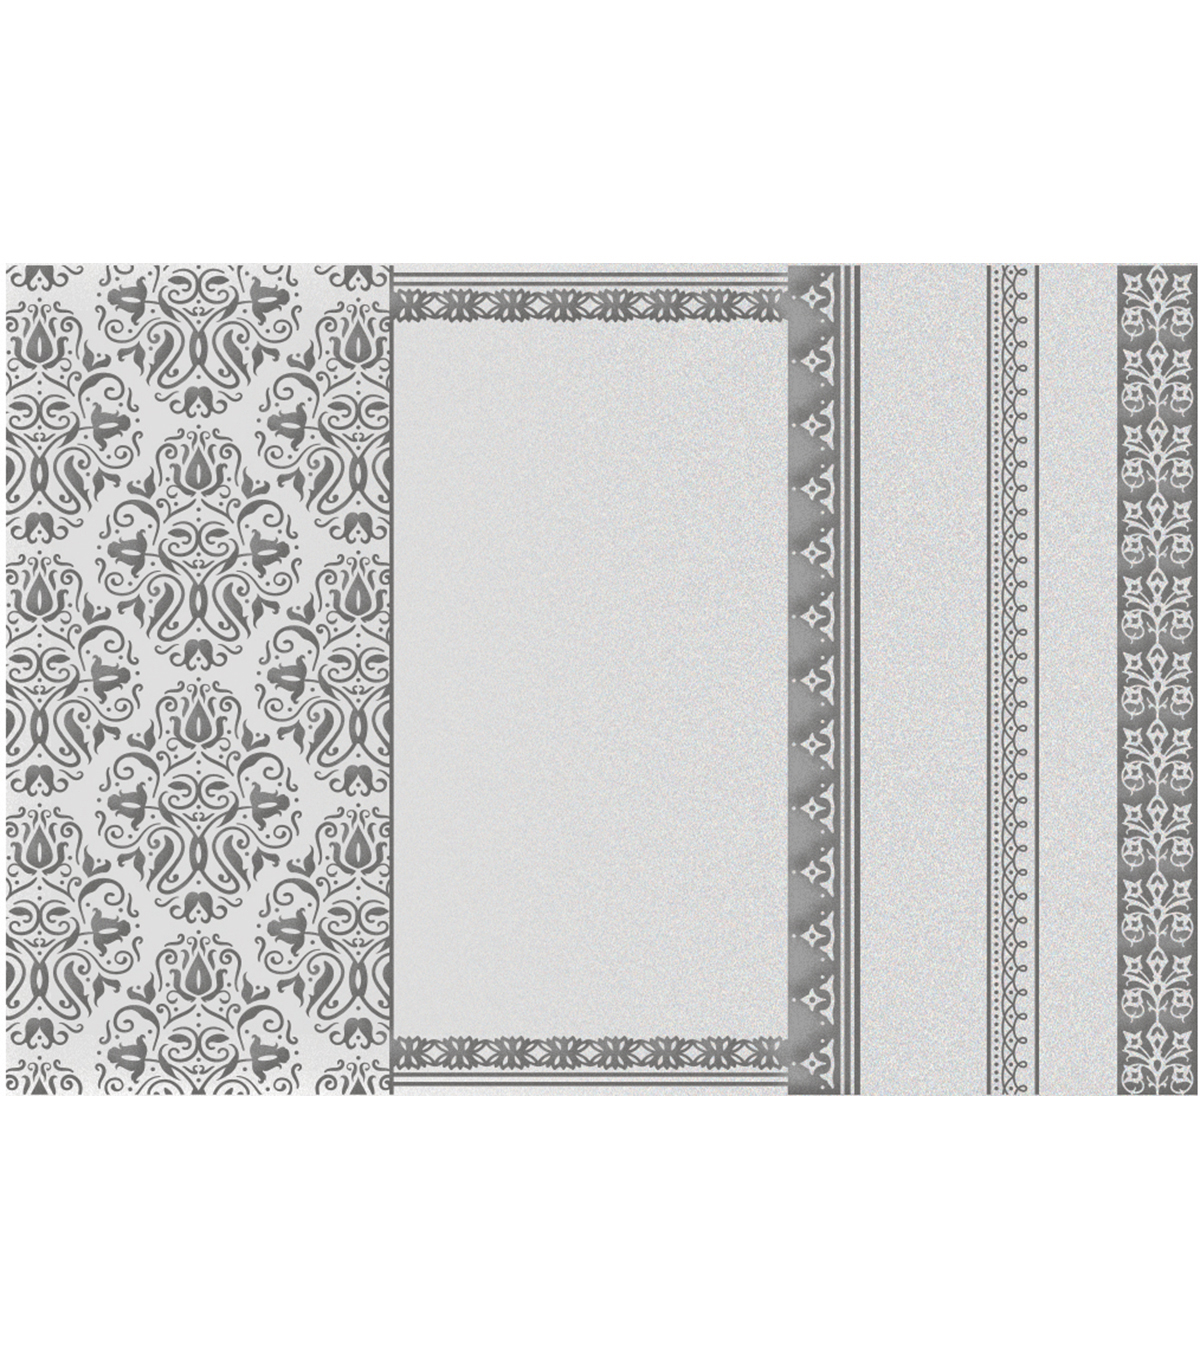 Couture Creations A4 Embossing Folder-Royal George